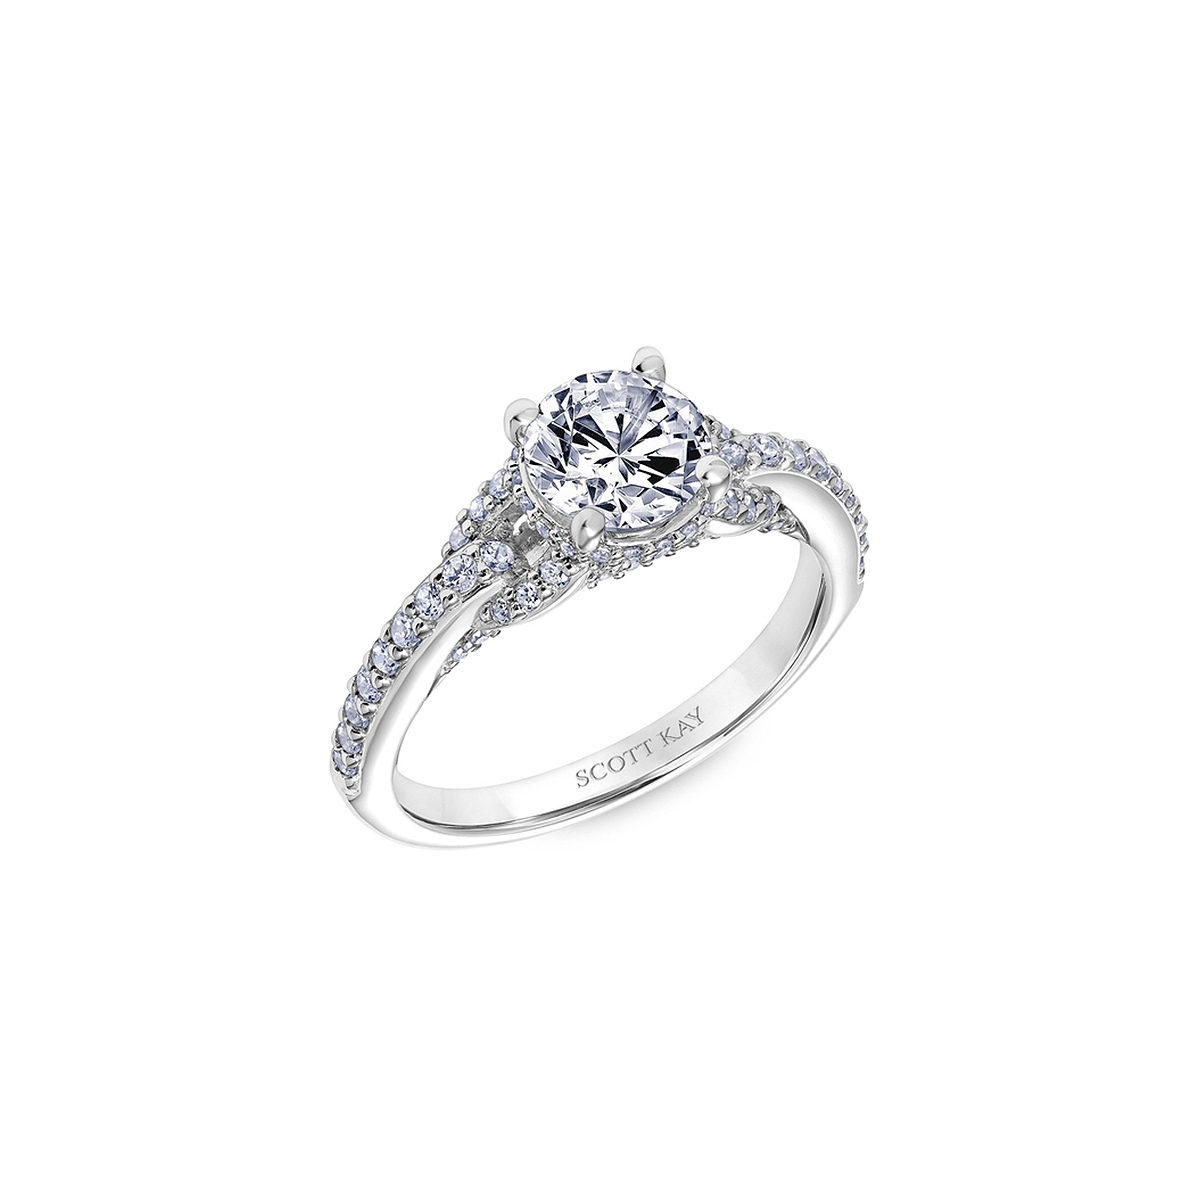 Scott Kay Engagement Rings: Where The Coast Gets Engaged